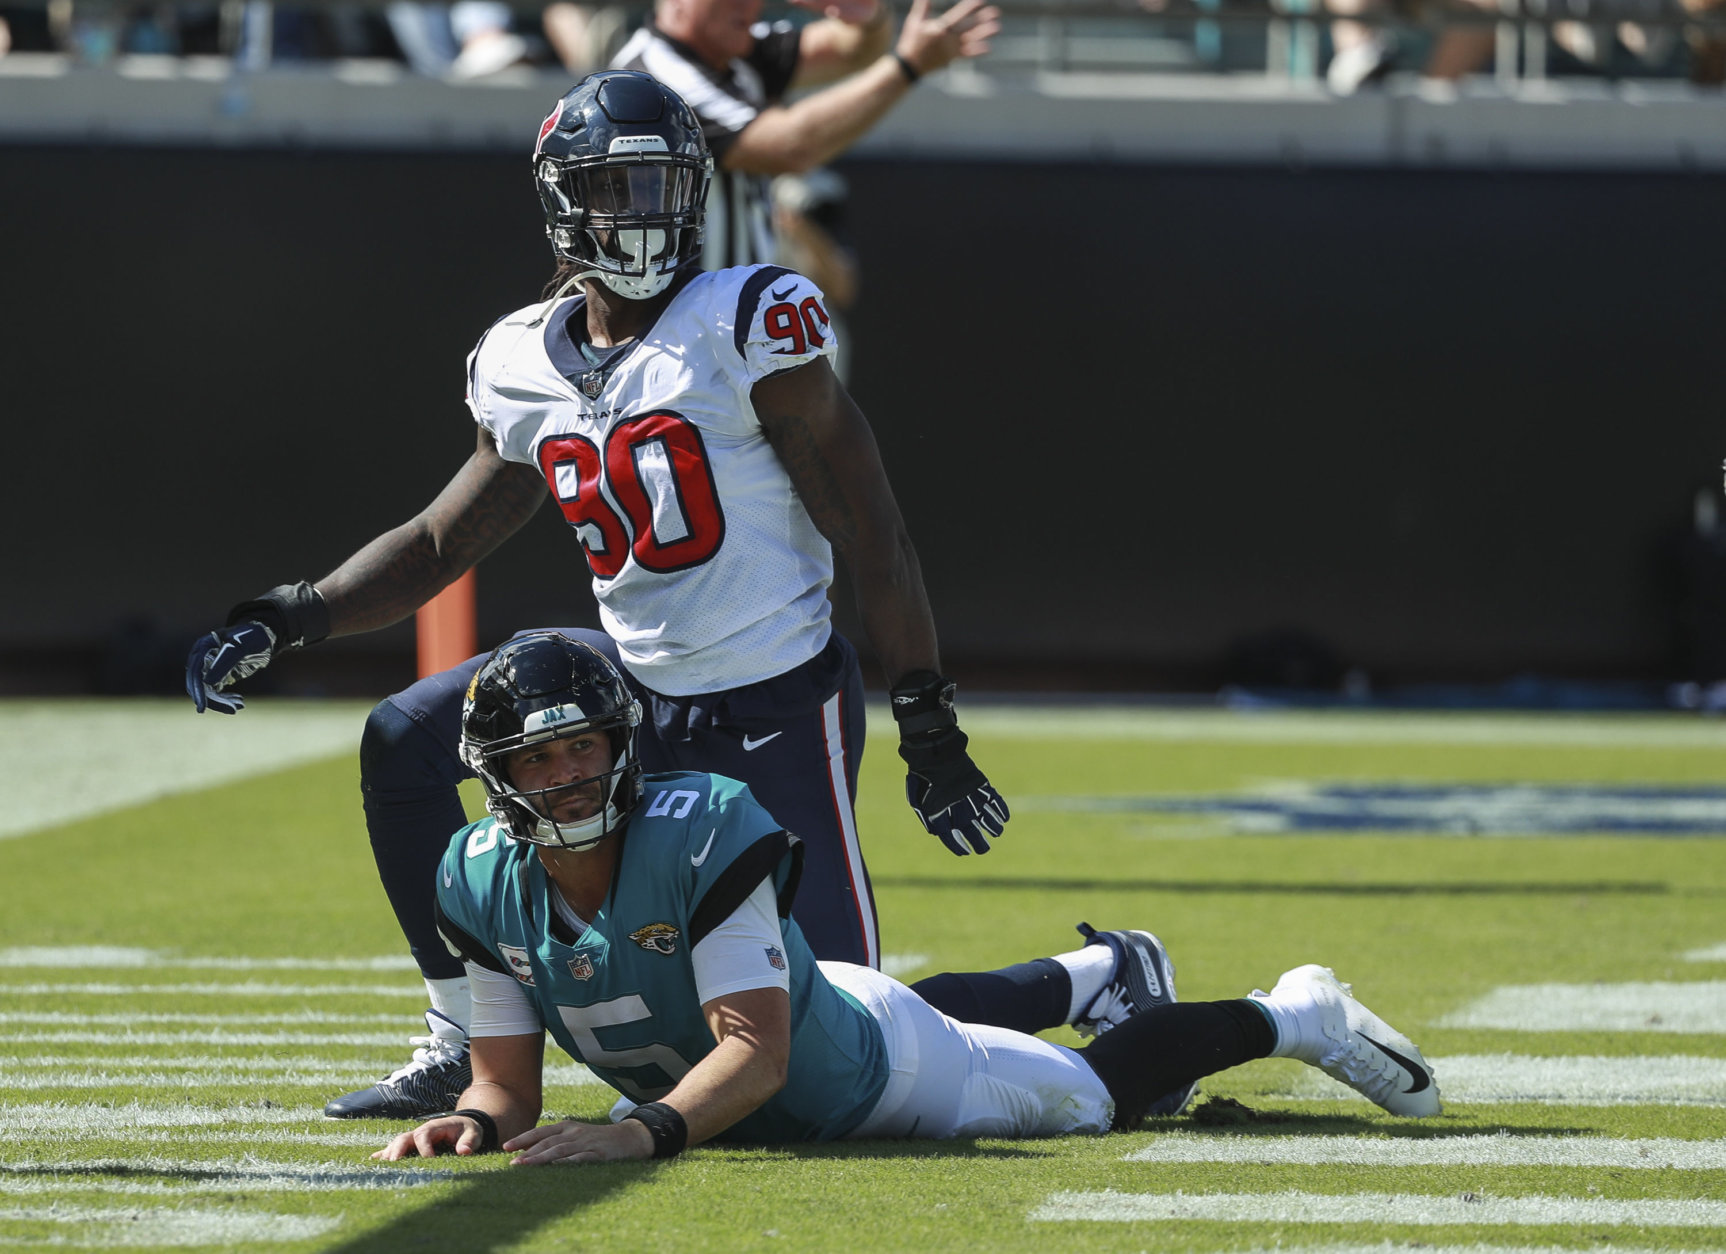 JACKSONVILLE, FL - OCTOBER 21: Blake Bortles #5 of the Jacksonville Jaguars looks up after being brought down by Jadeveon Clowney #90 of the Houston Texans during the second half at TIAA Bank Field on October 21, 2018 in Jacksonville, Florida.  (Photo by Scott Halleran/Getty Images)